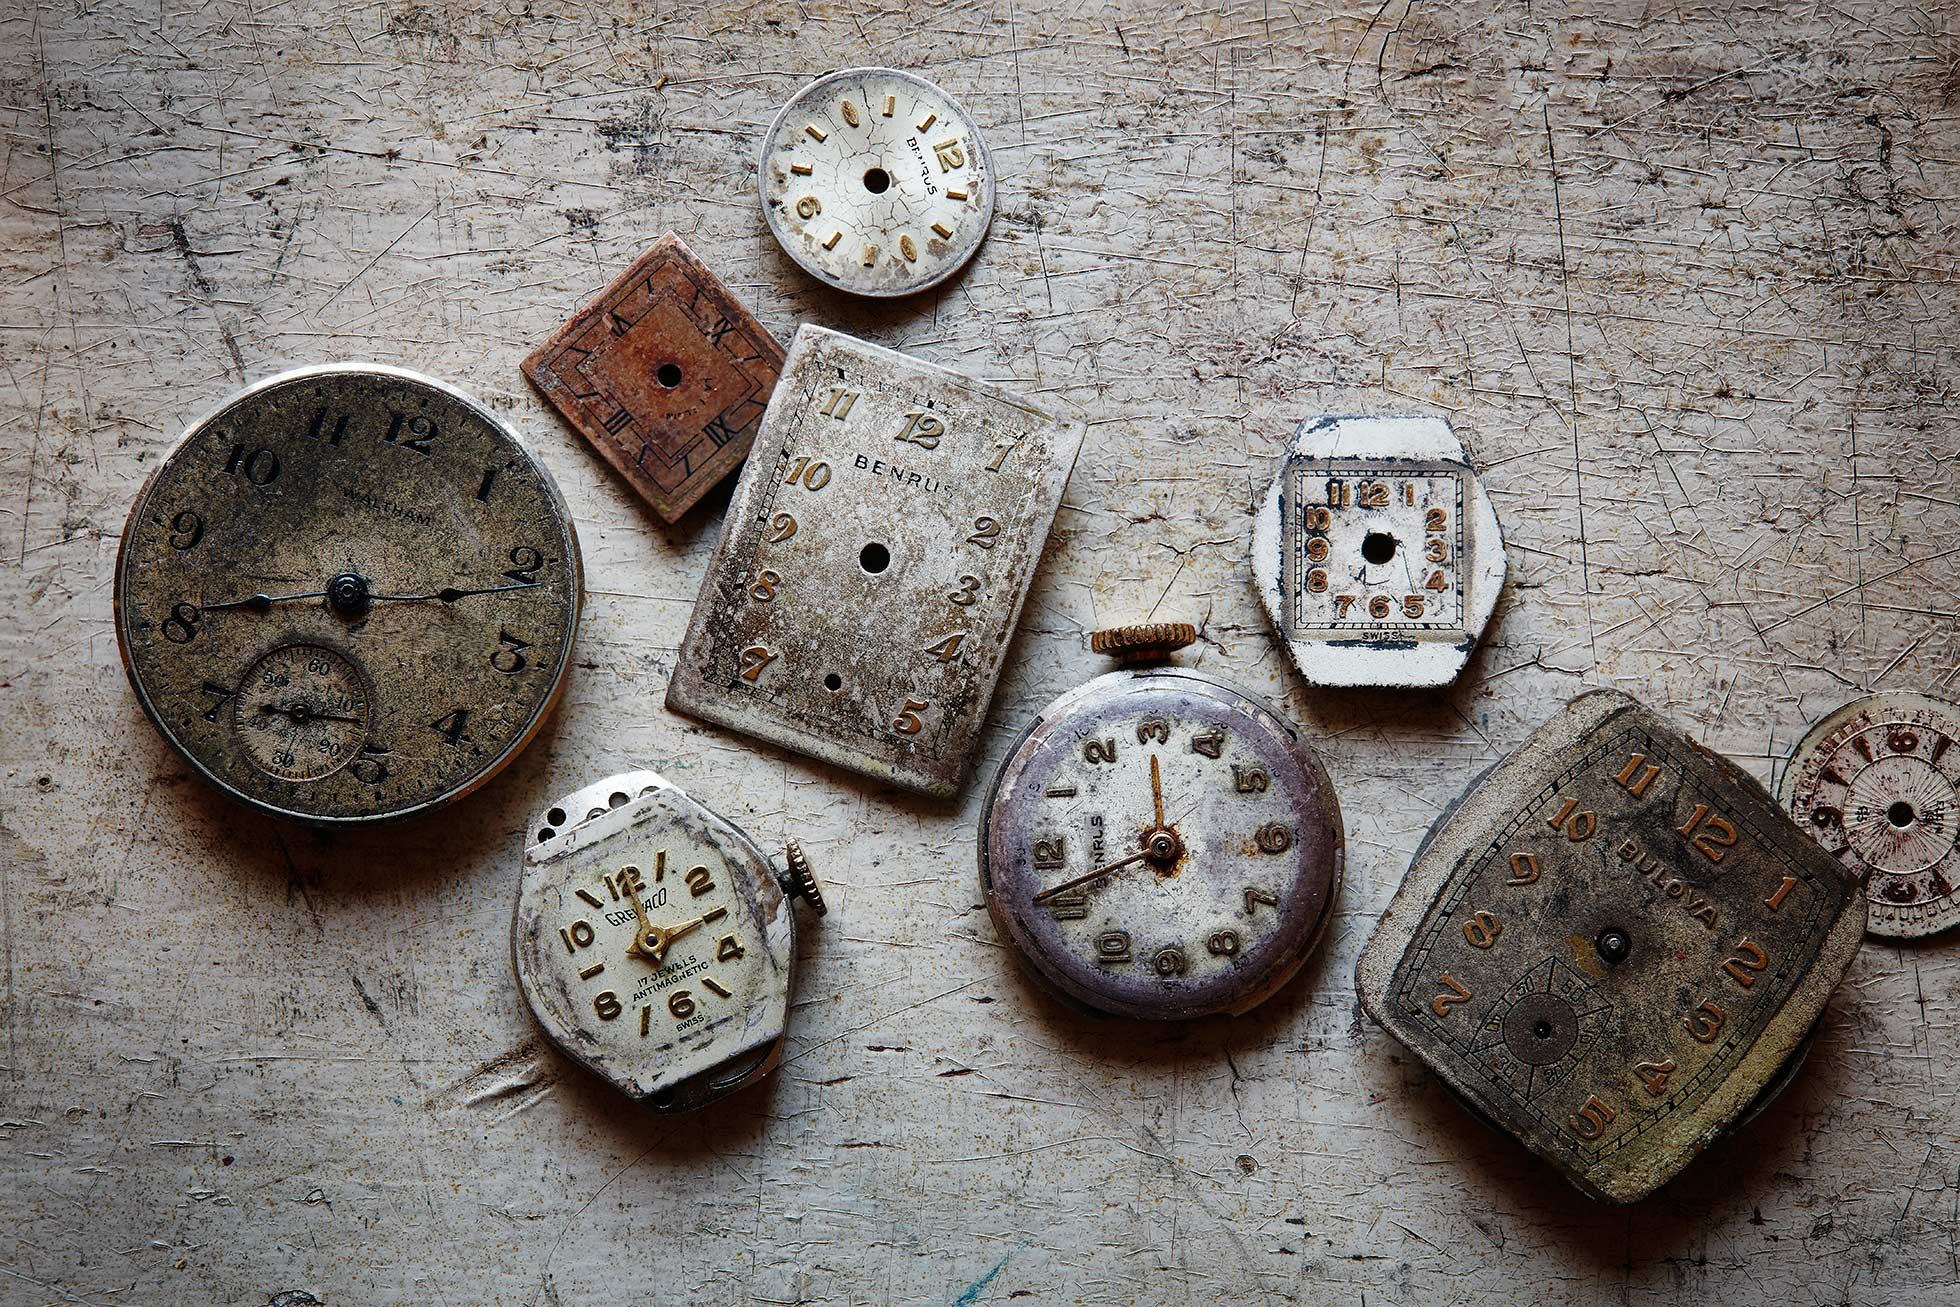 Various old watch faces on a rustic background.